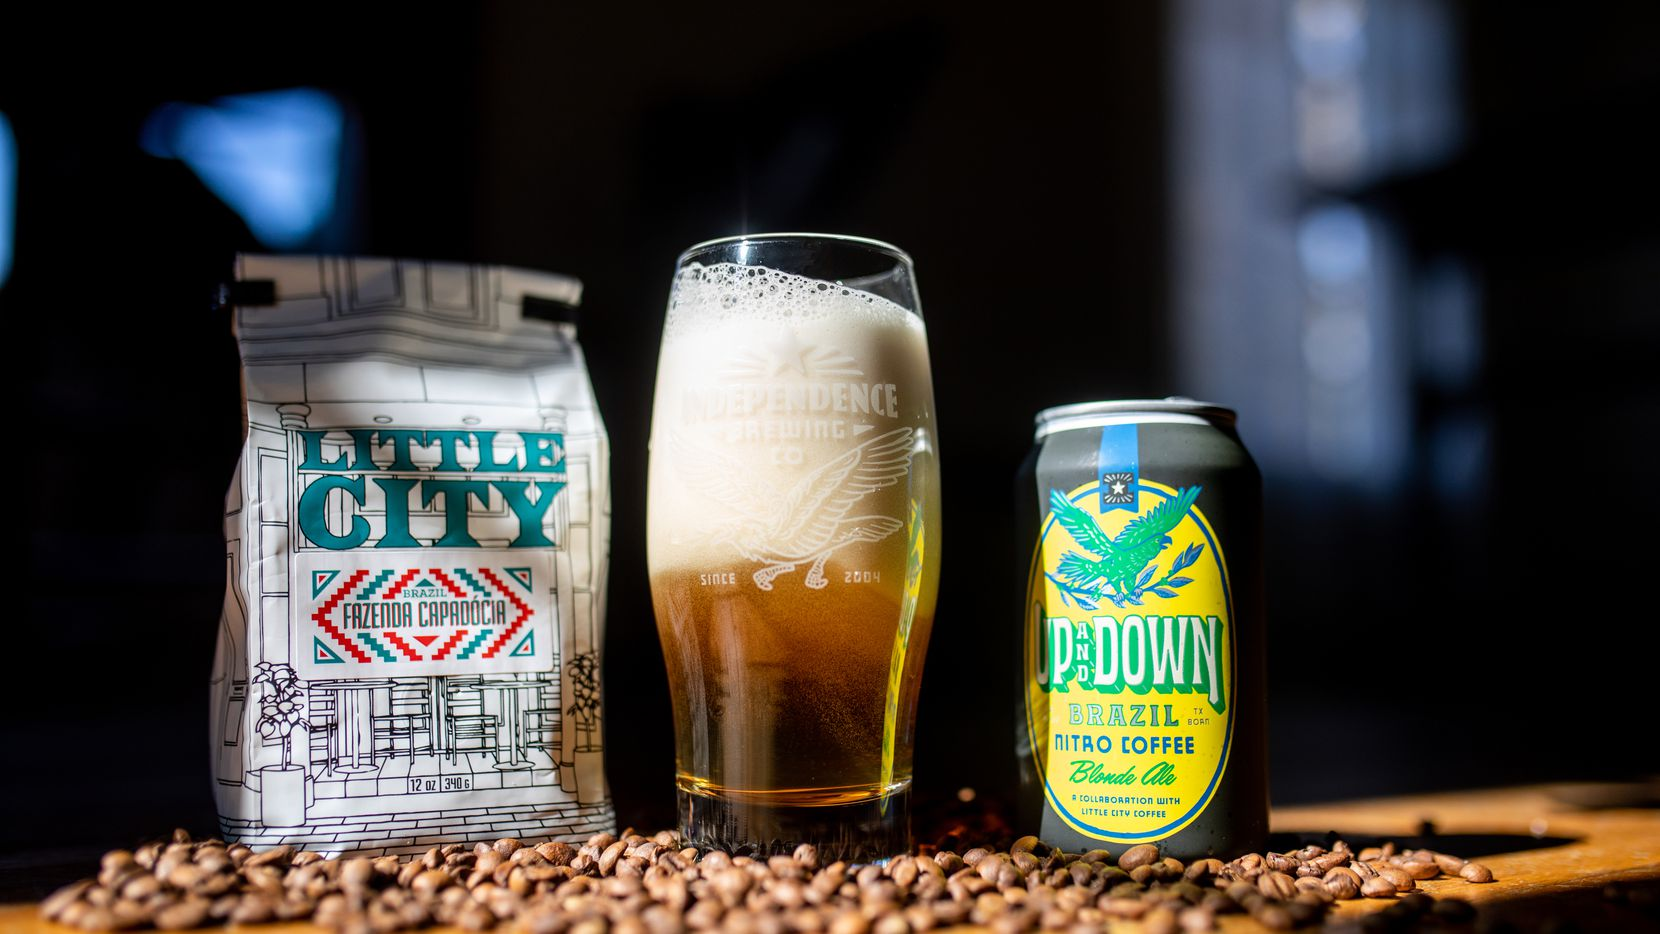 Independence Brewing Company s Up and Down: Brazil is a nitro-charged blonde ale with coffee.